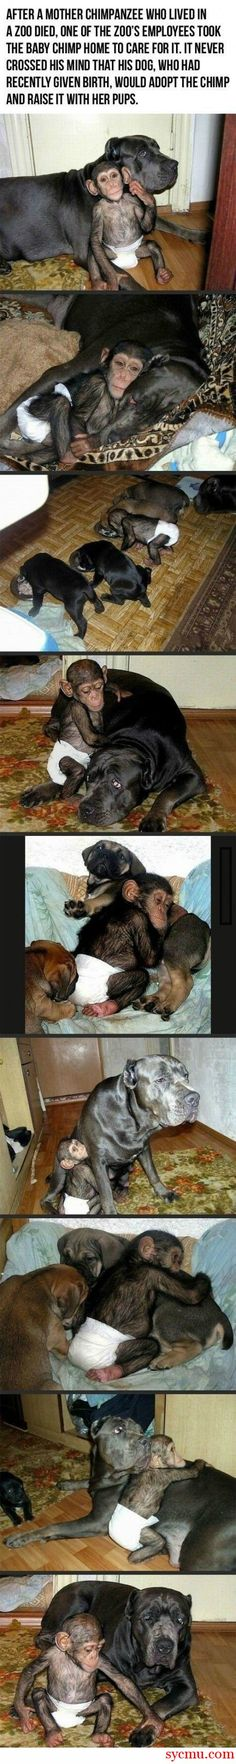 This is SO SWEET! Monkey Adopted by Dog